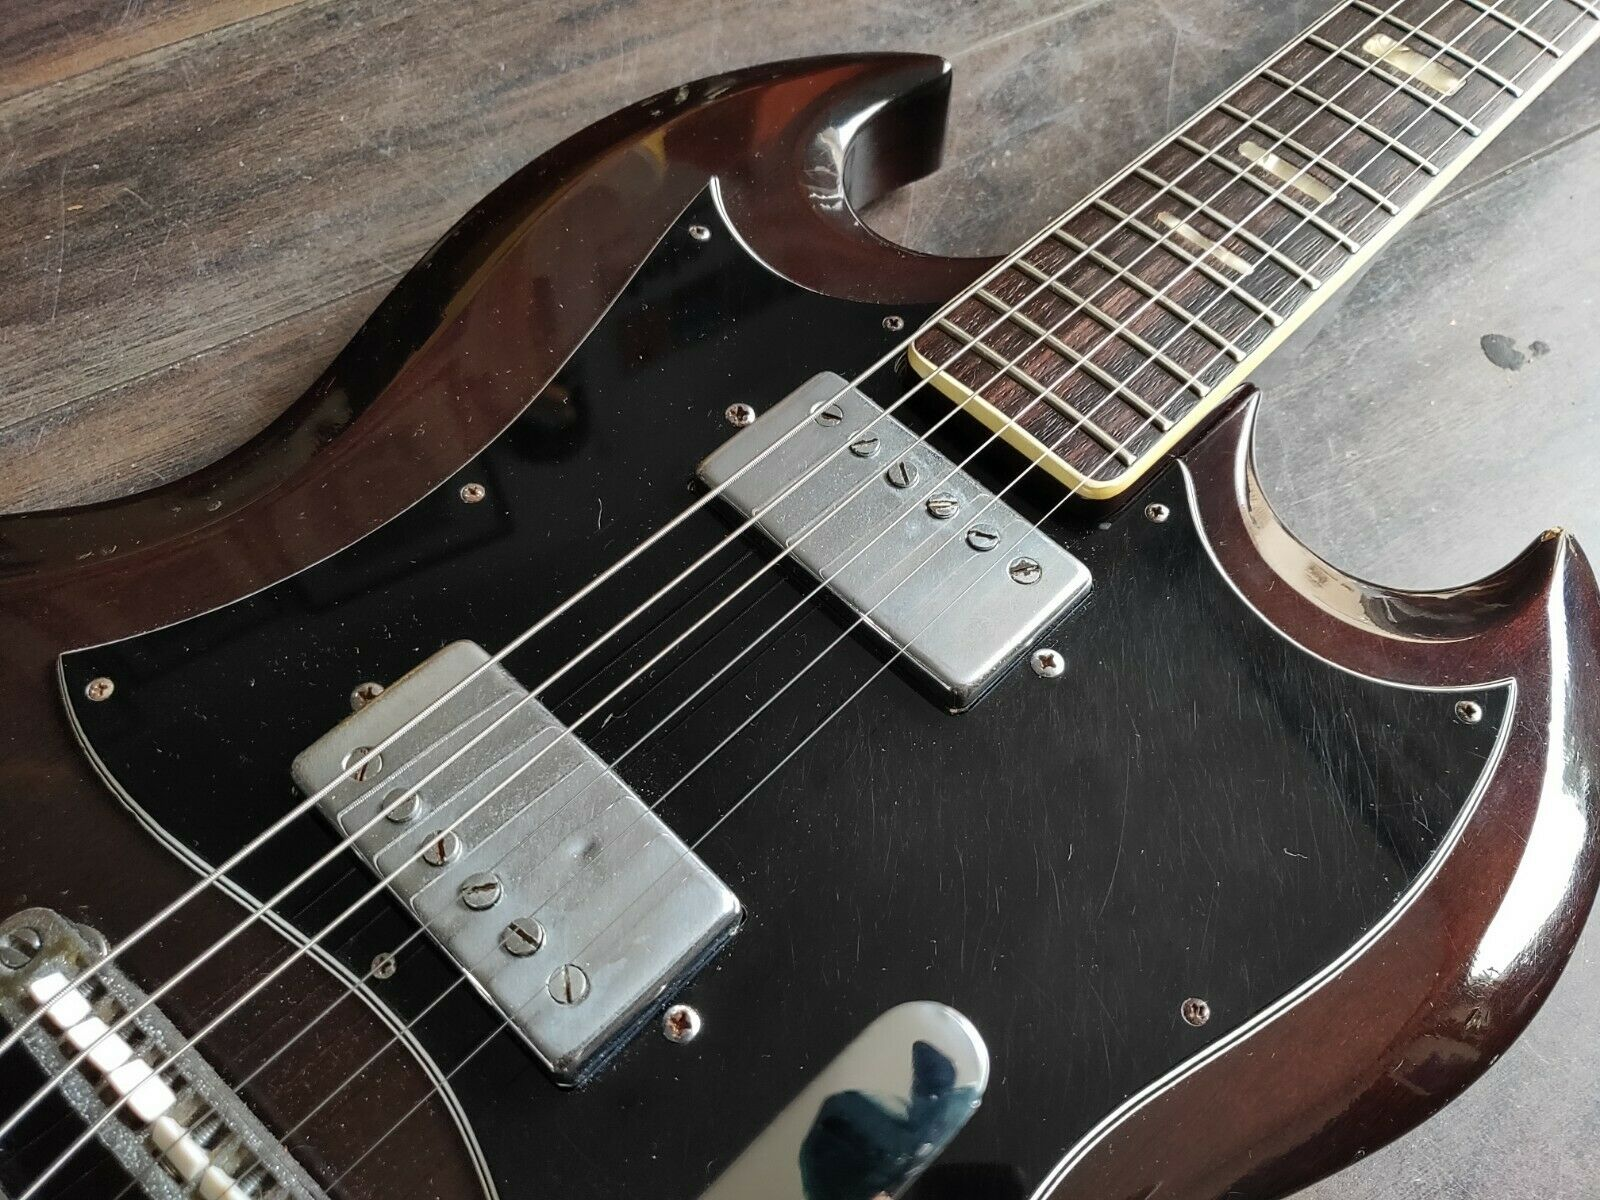 1972 Ibanez 2354 SG (Walnut) Japan Vintage Electric Guitar